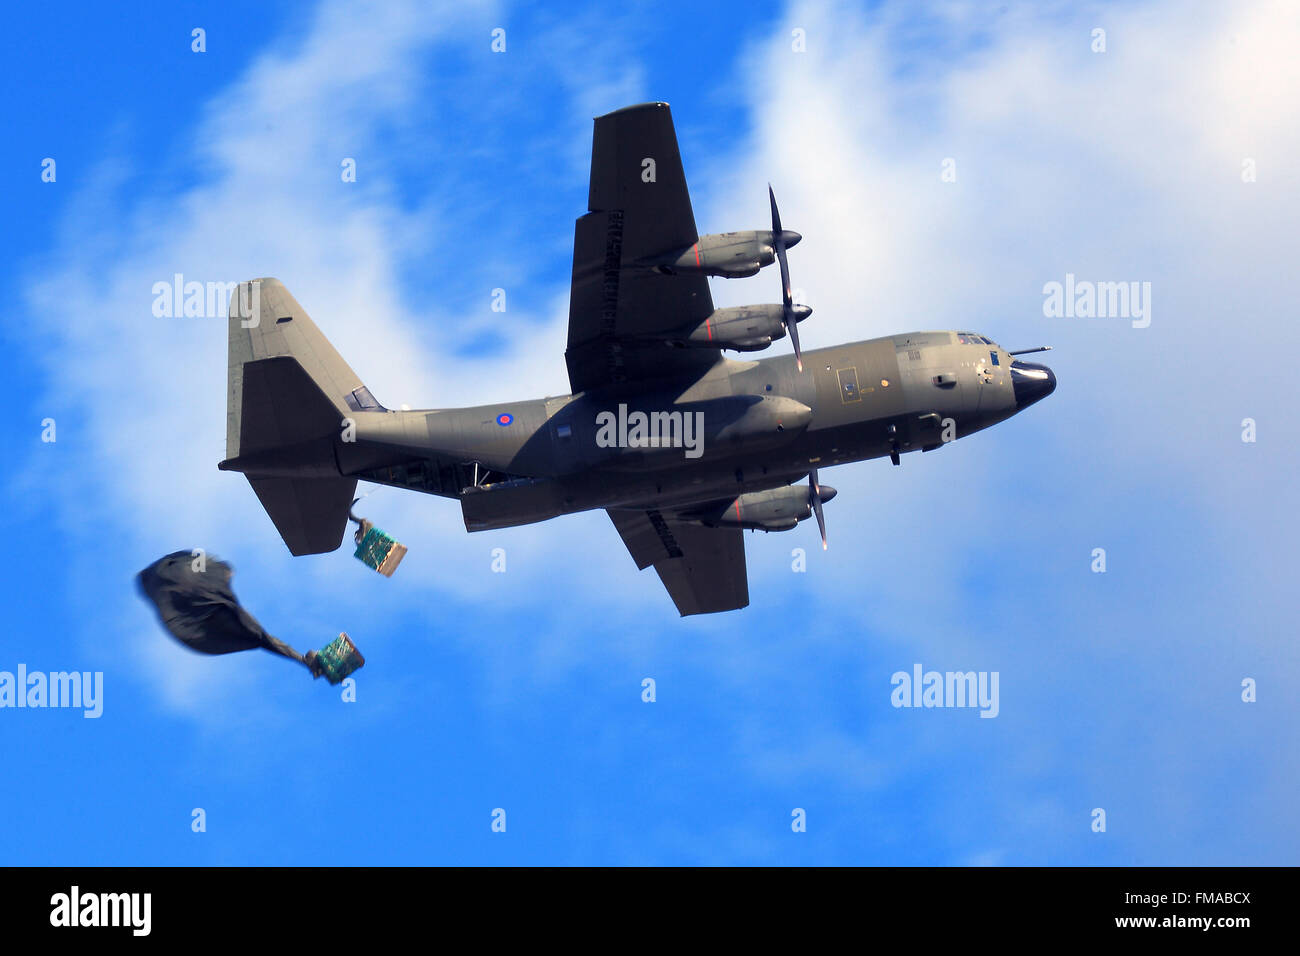 Royal Air Force Hercules transport aircraft carries out a parachute drop of cargo on Salisbury Plain Training Area. - Stock Image